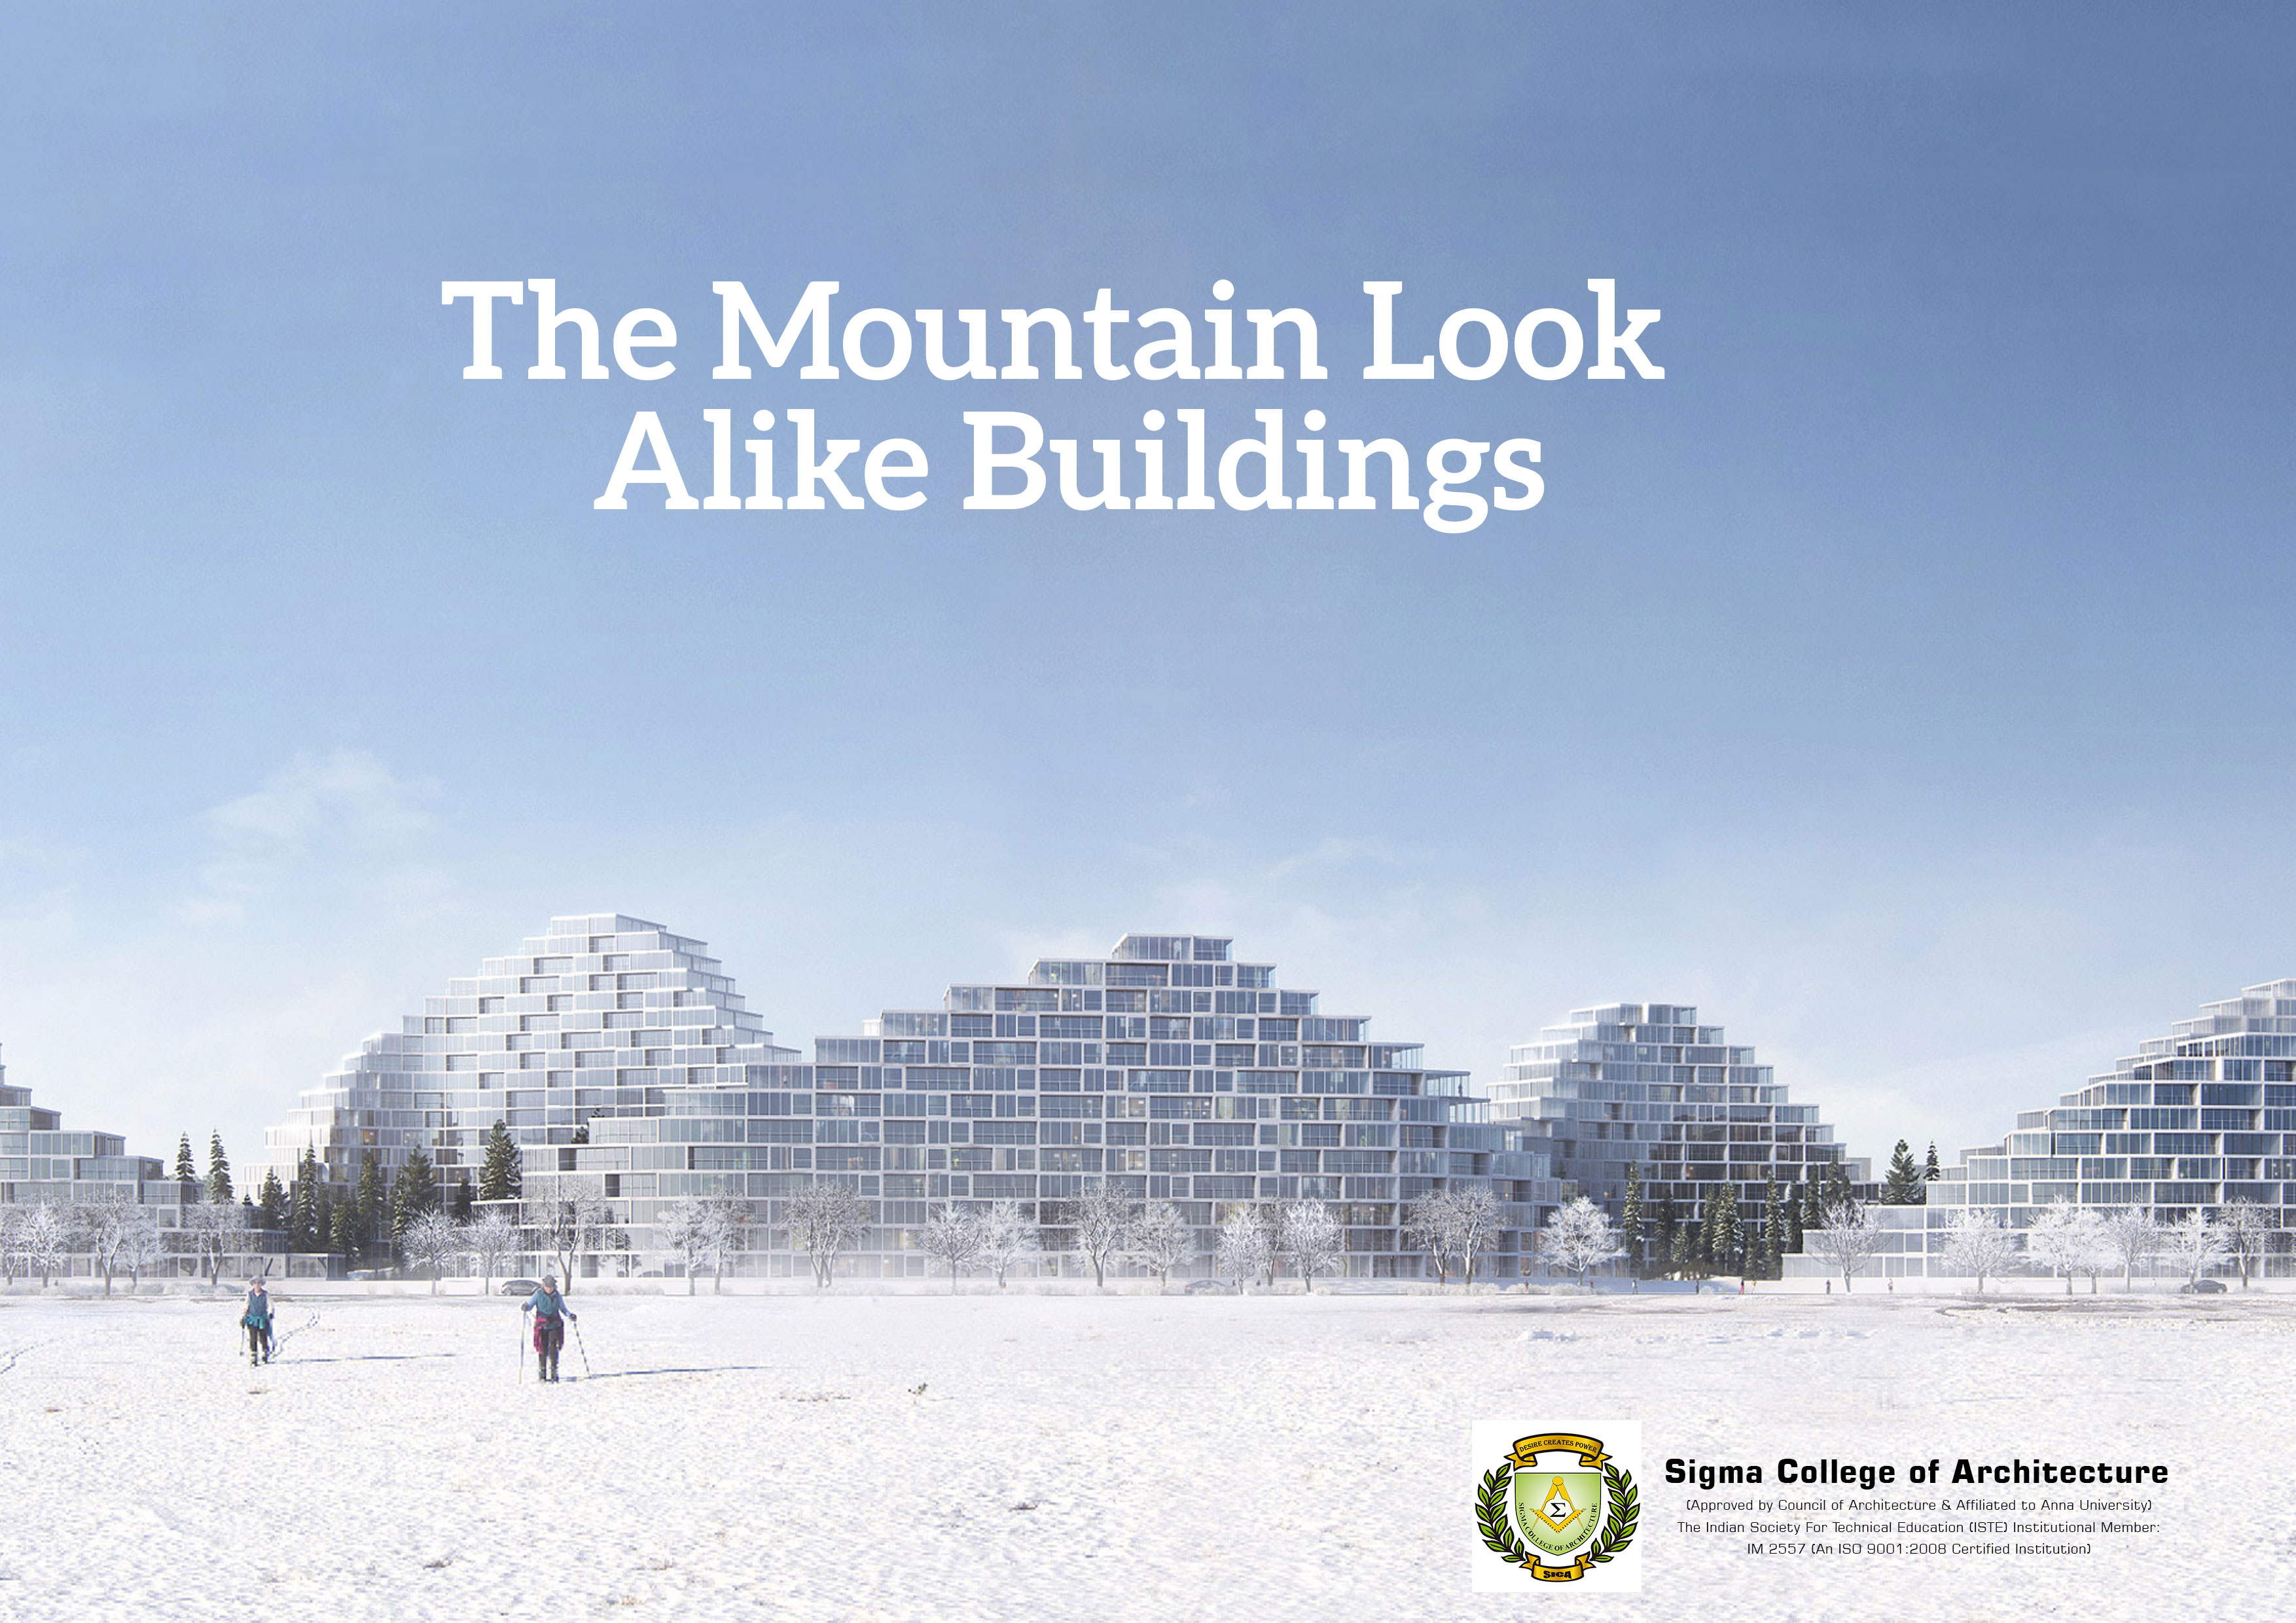 The Mountain Look Alike Buildings